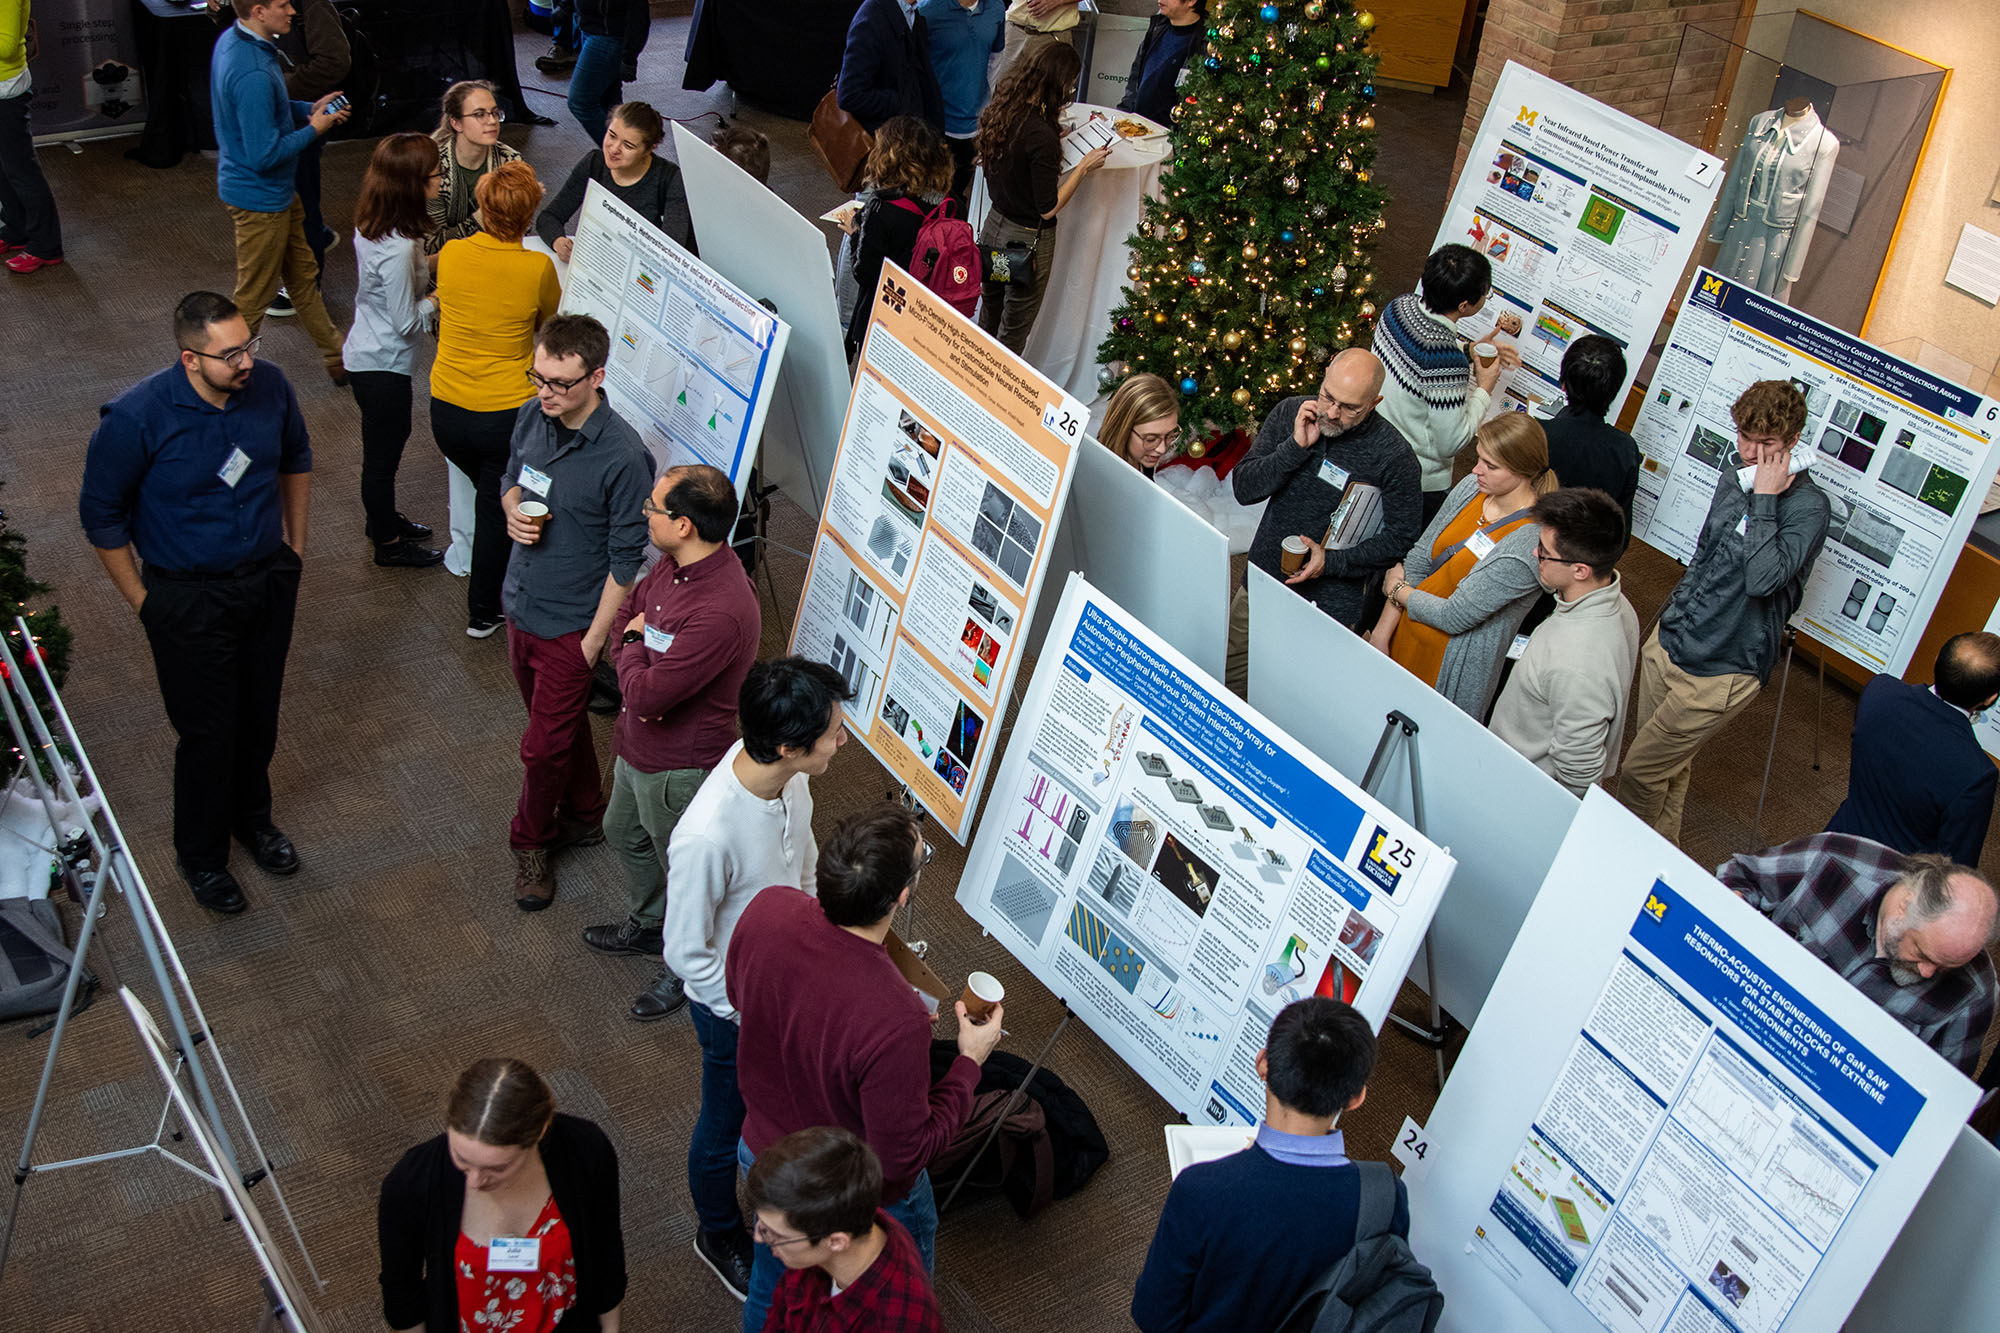 Overhead shot of people milling around the poster session